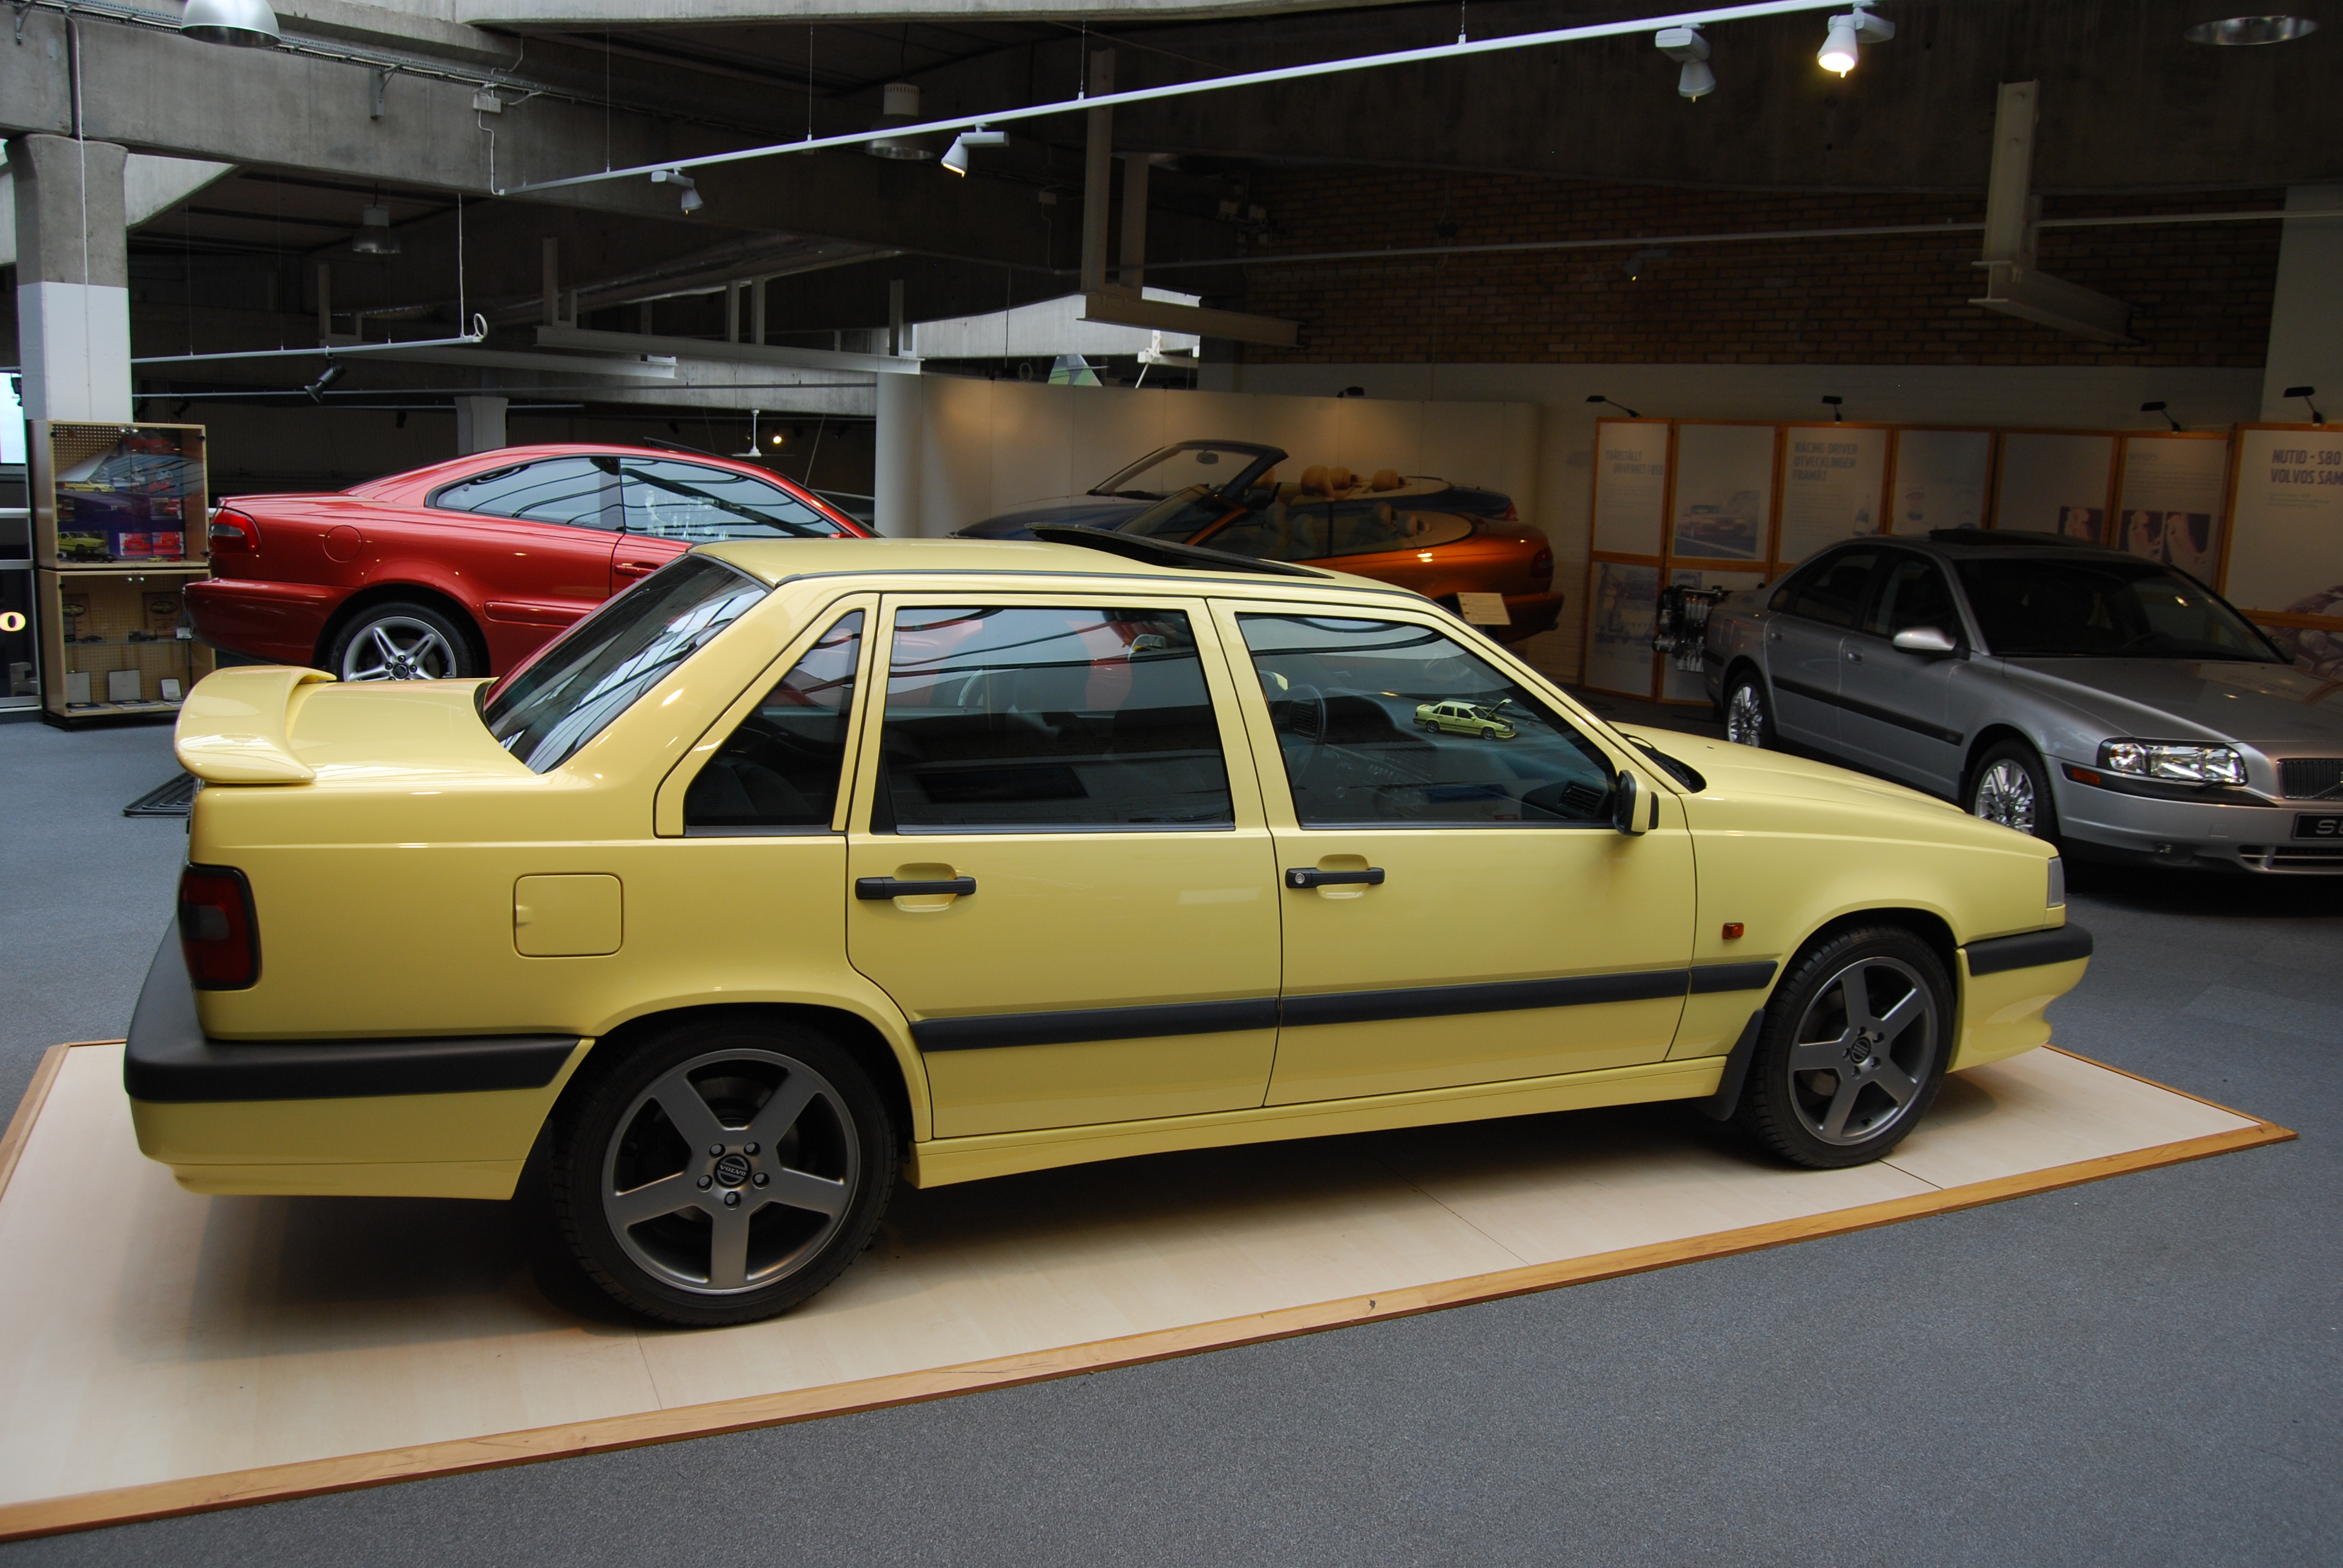 PDY 444 | Volvo850T-5R